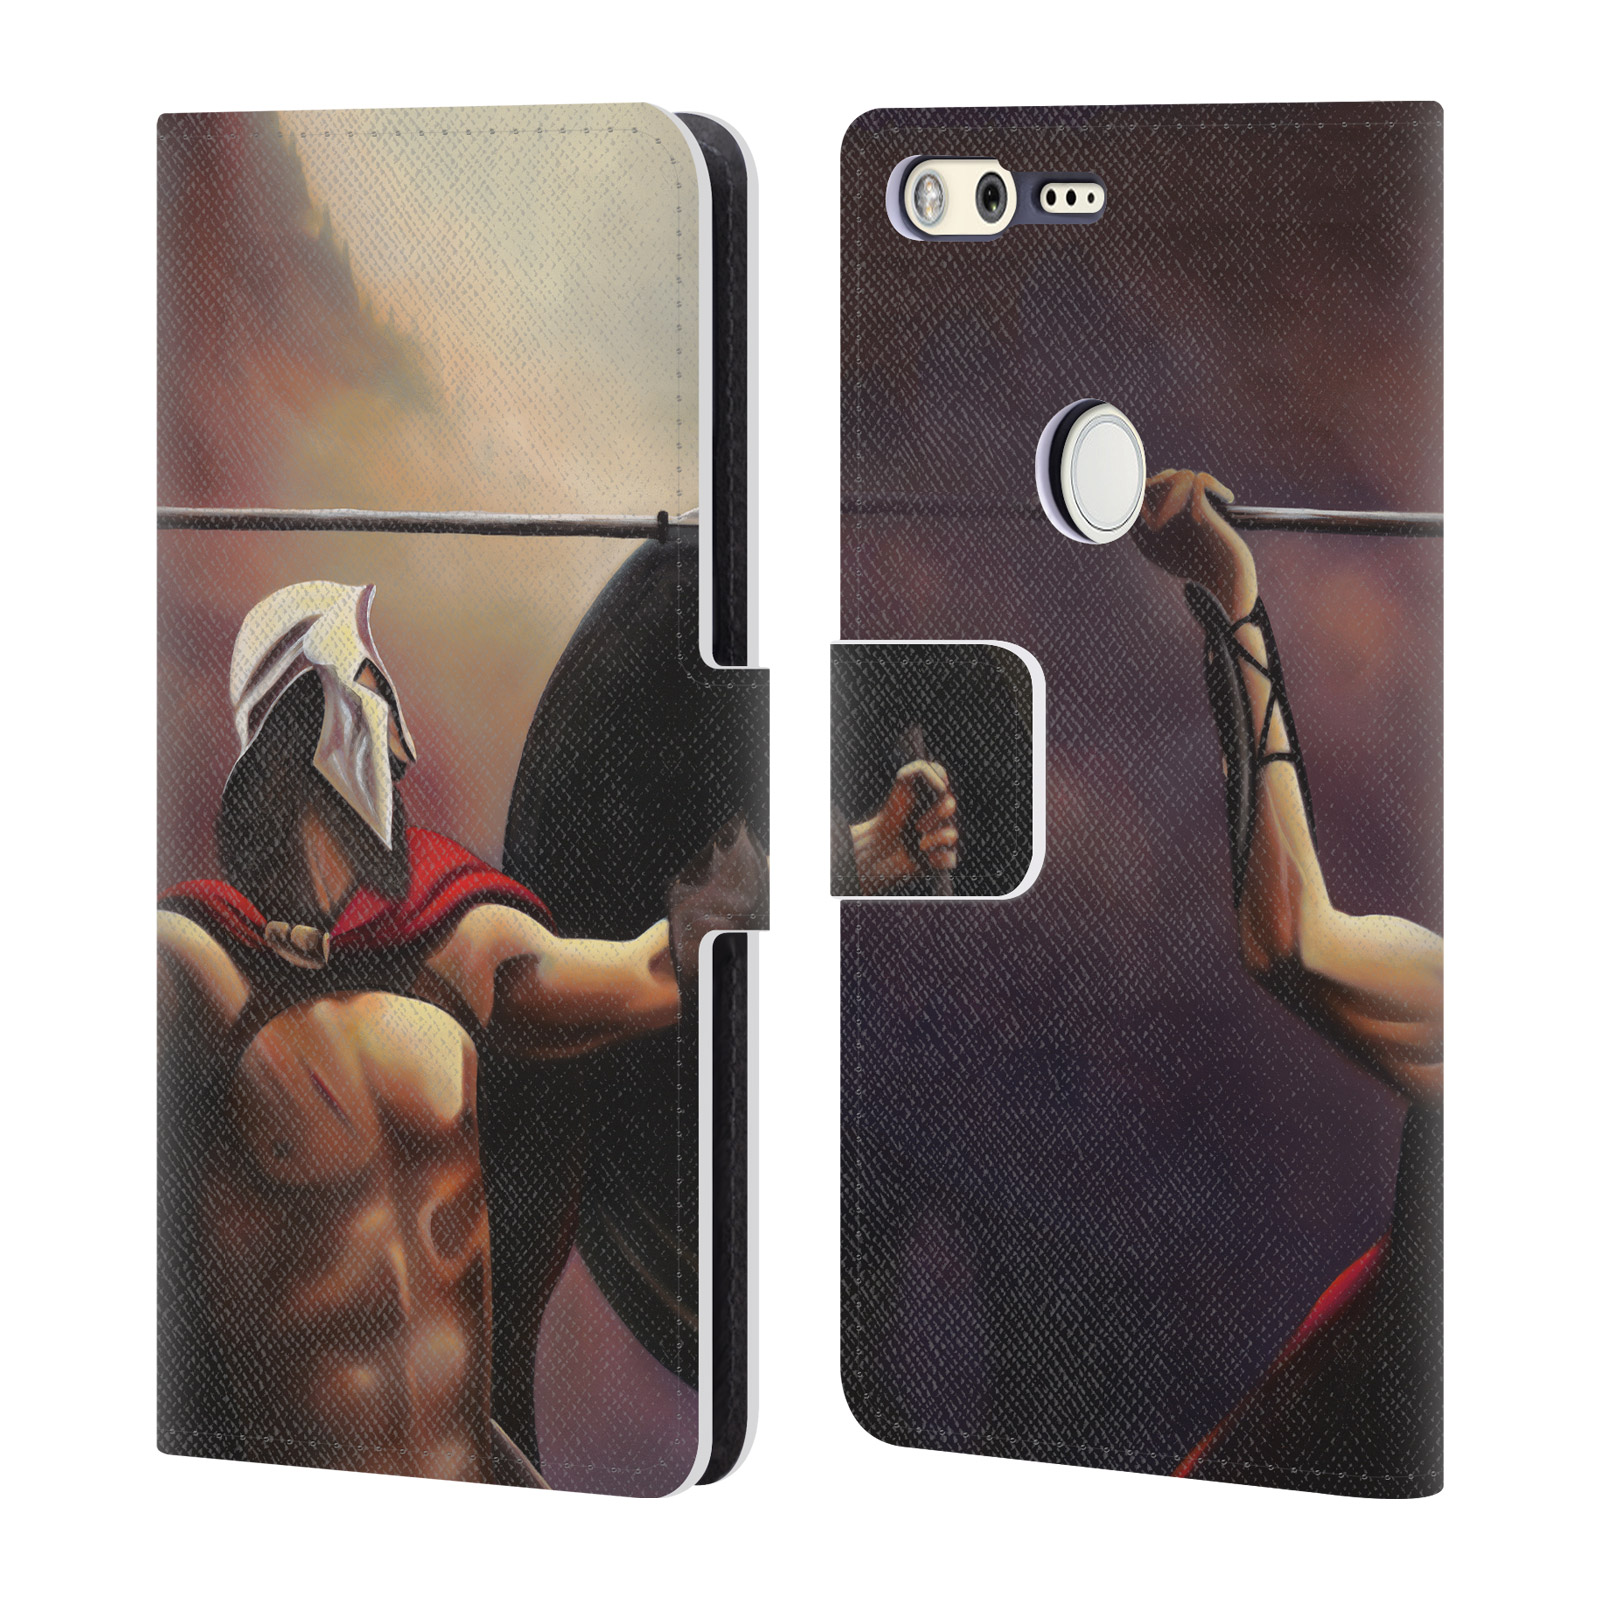 OFFICIAL-GENO-PEOPLES-ART-LIFE-LEATHER-BOOK-WALLET-CASE-COVER-FOR-GOOGLE-PHONES